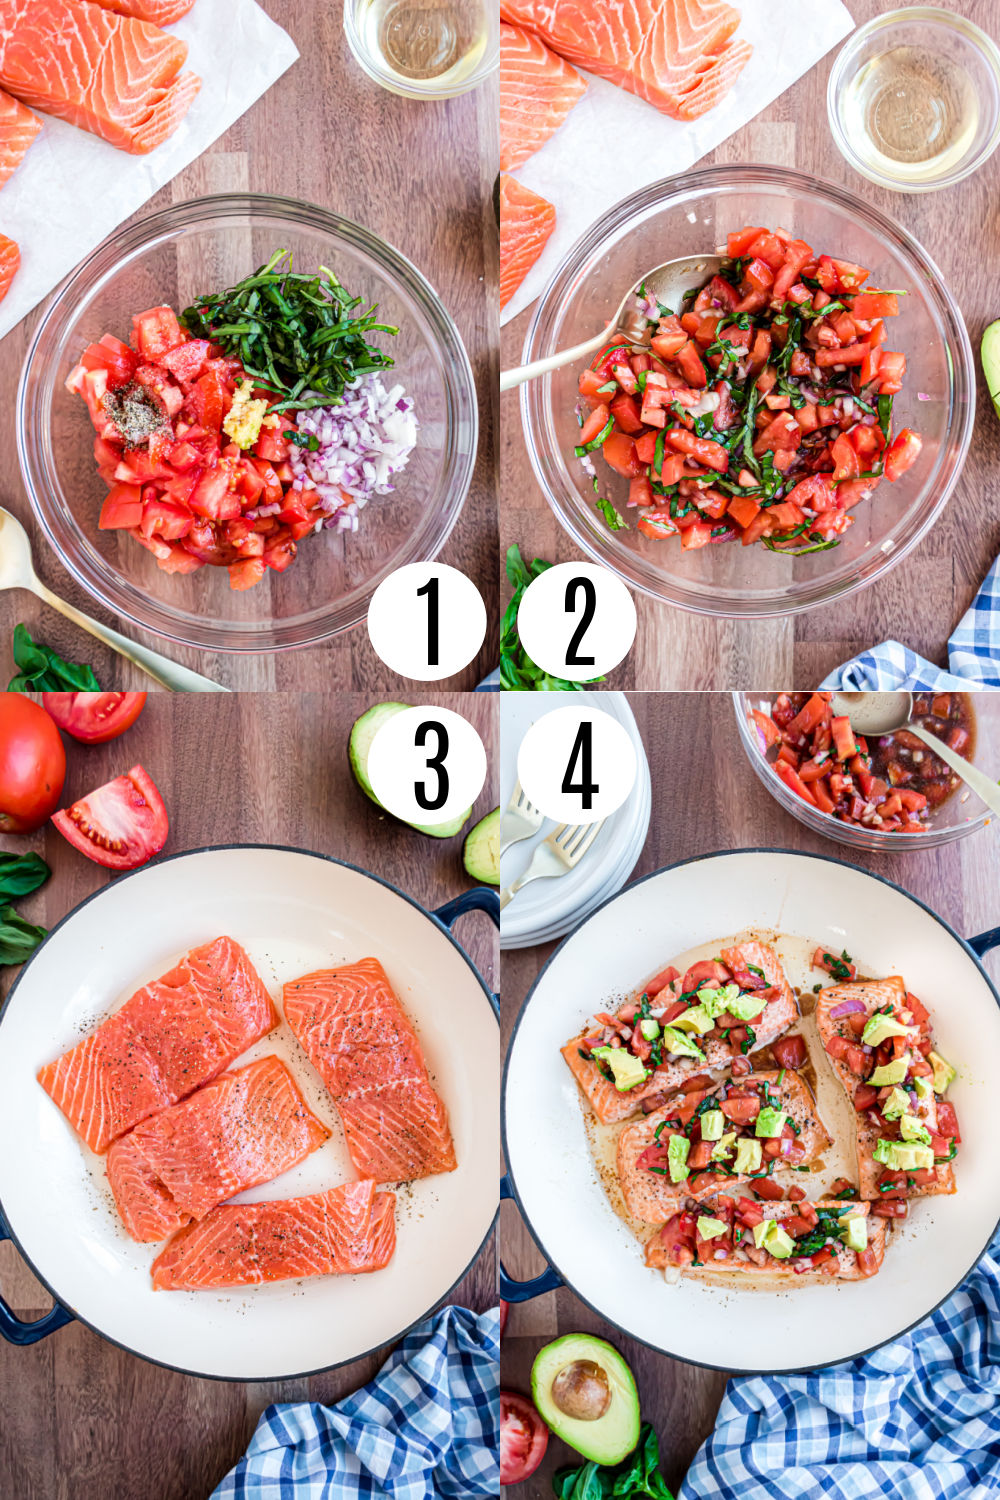 Step by step photos showing how to make bruschetta salmon.